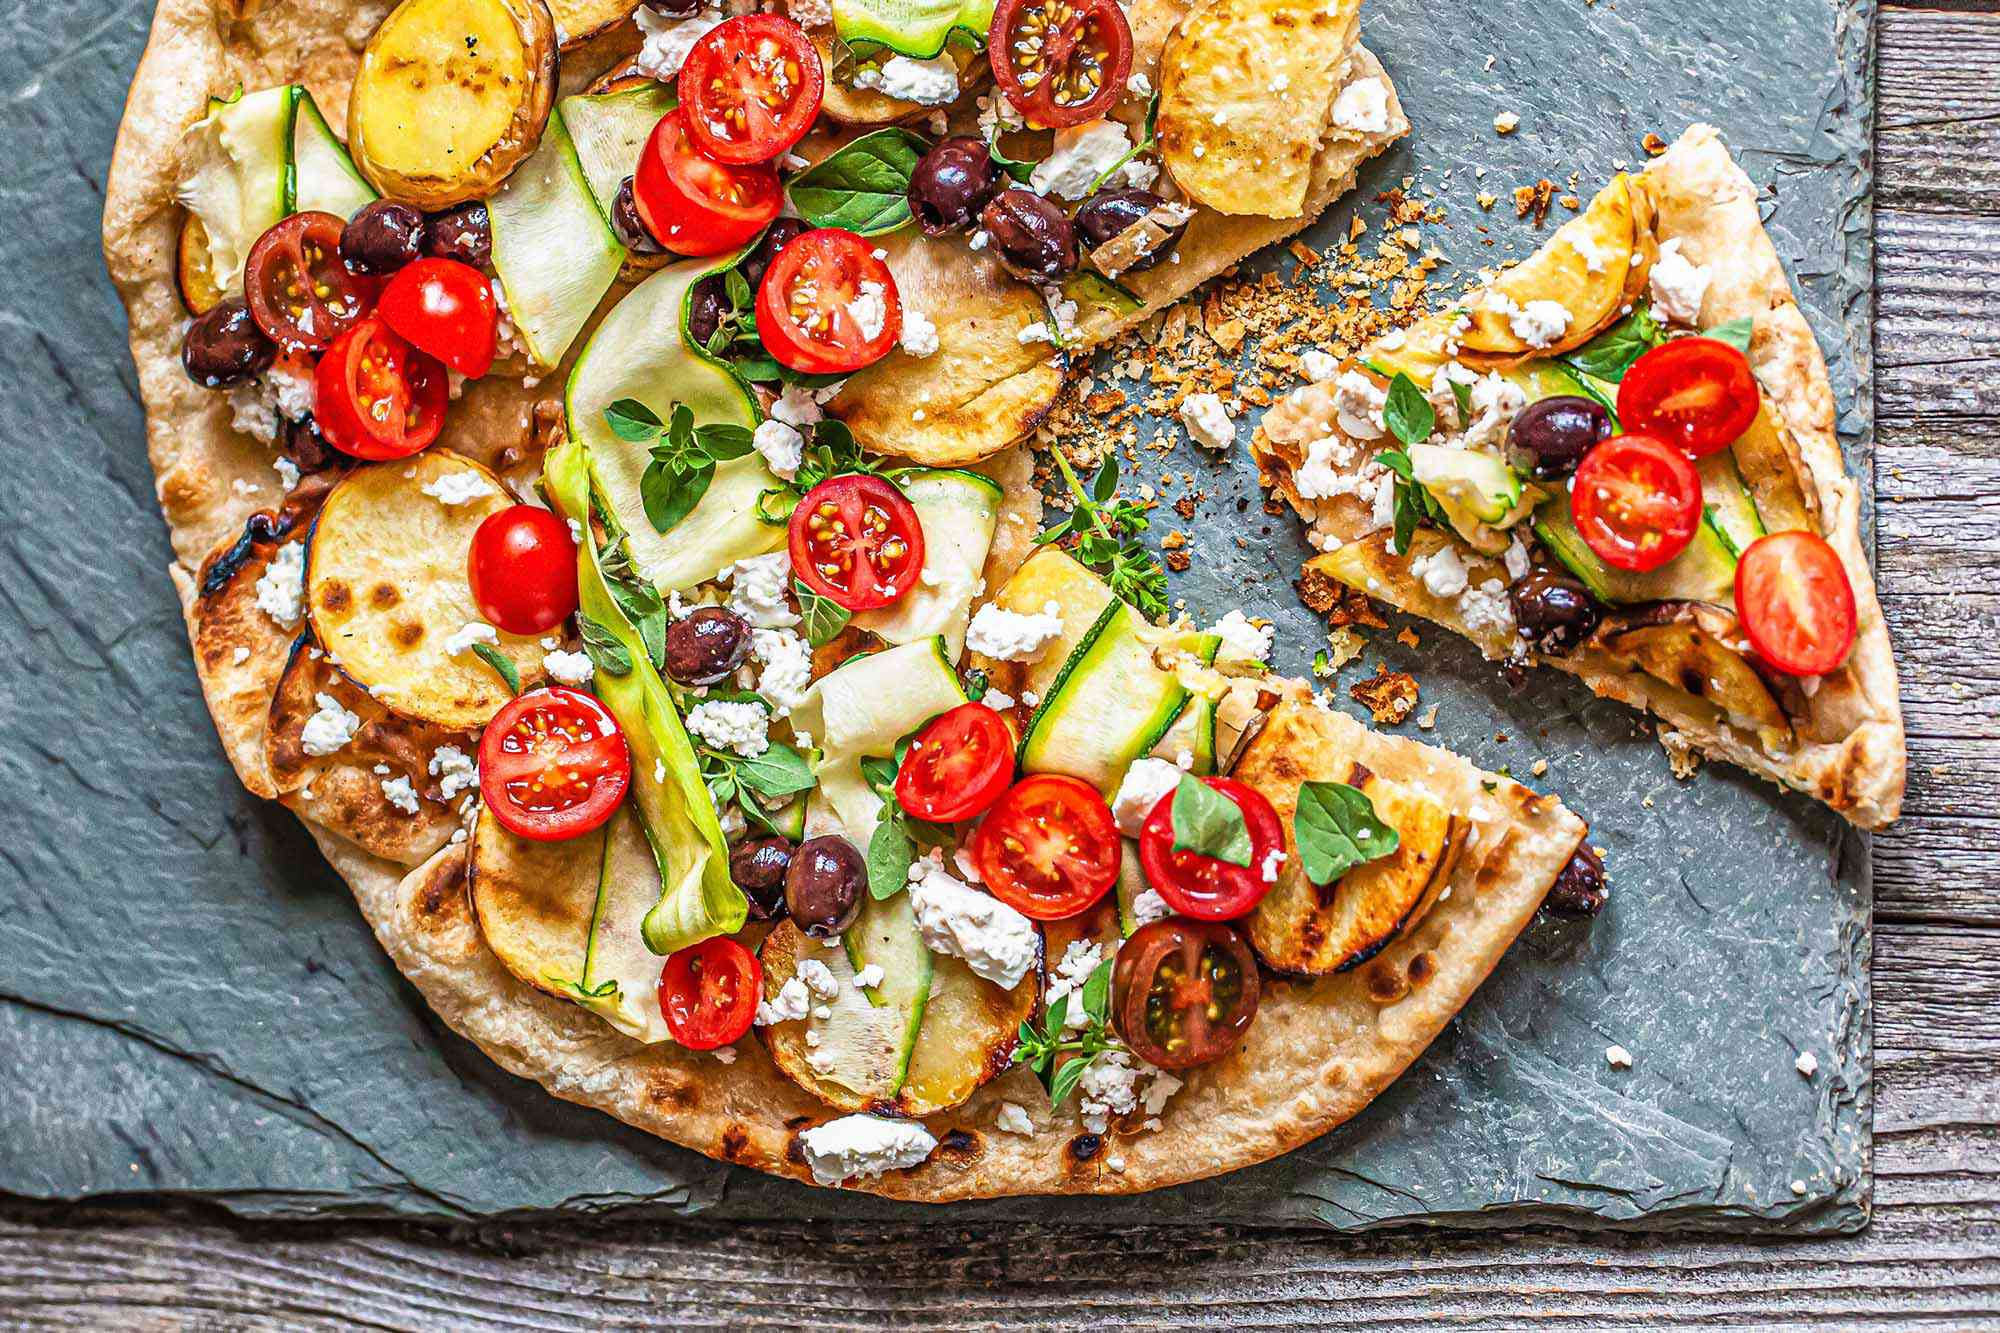 The best grilled pizza topped with halved tomatoes, black olives, cheese, zucchini ribbons and sliced potatoes. The pizza is set on a slate background and a piece on the right is pulled away from the rest.